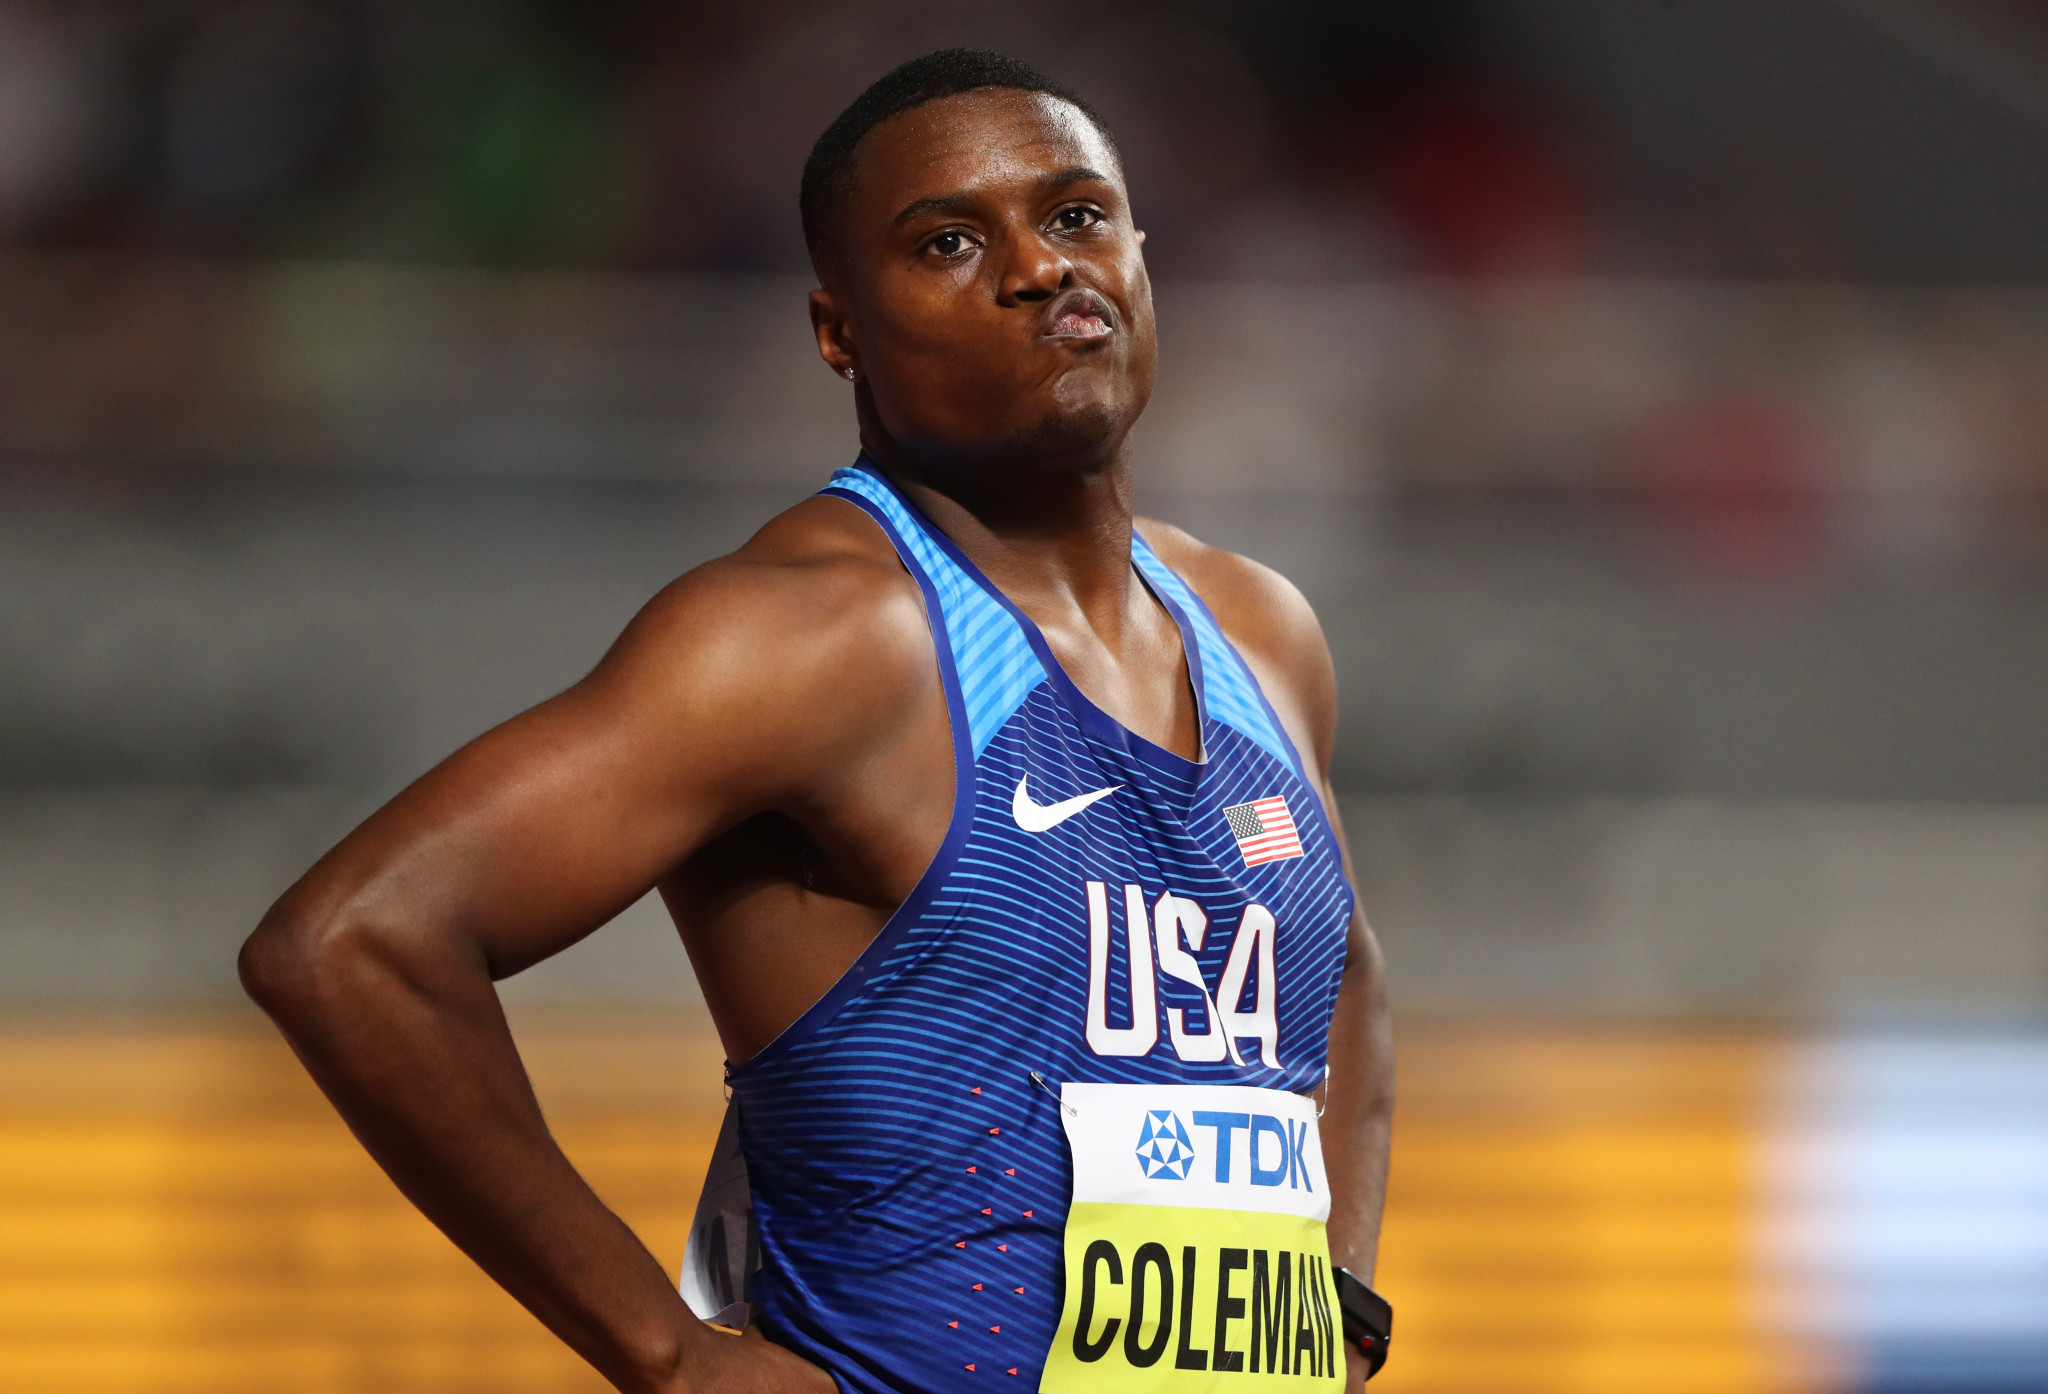 Christian Coleman, the reigning men's 100m world champion, was given a two-year doping ban in this disappointing year for athletics ©Getty Images